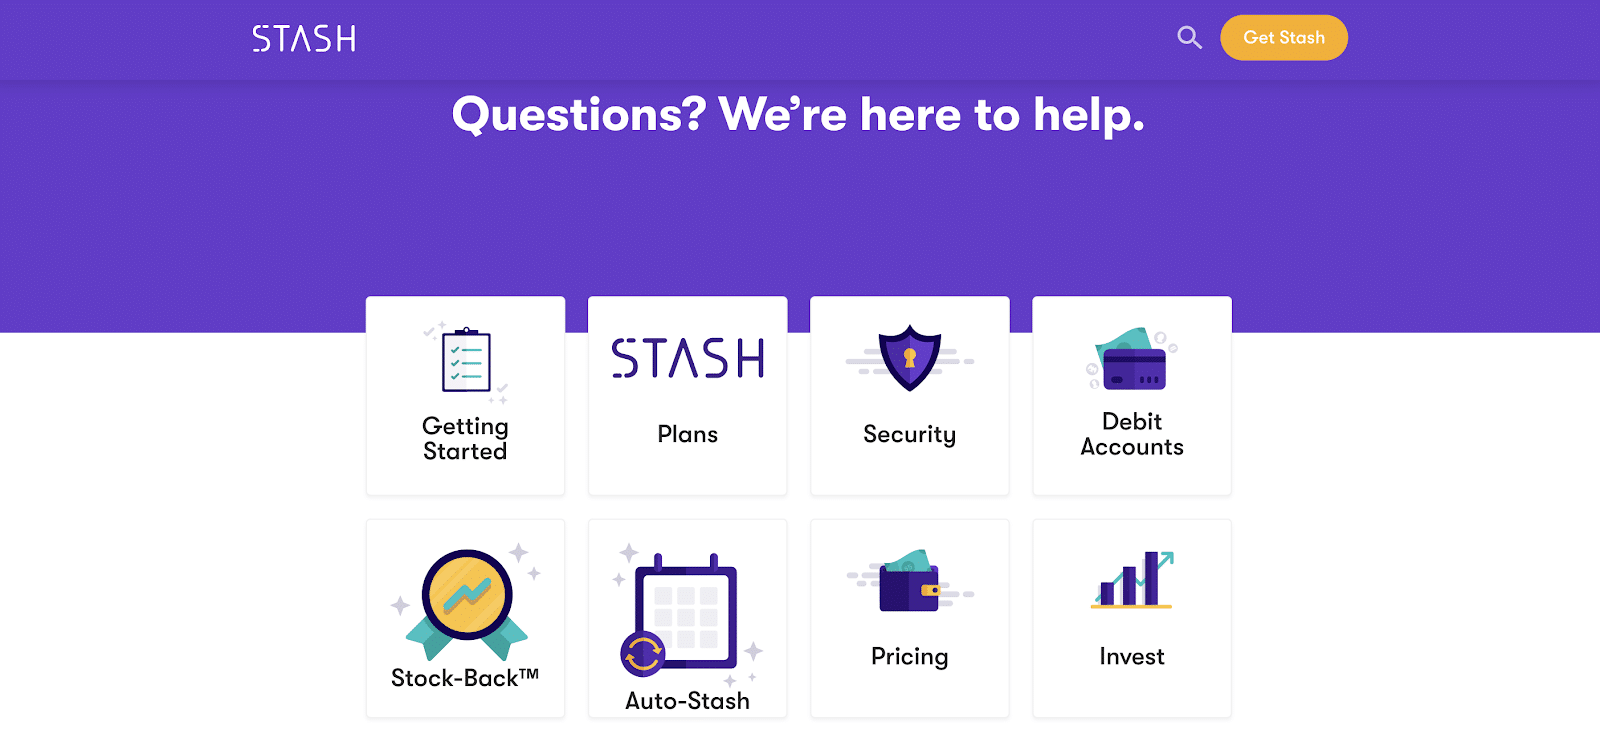 stash invest faq page to help